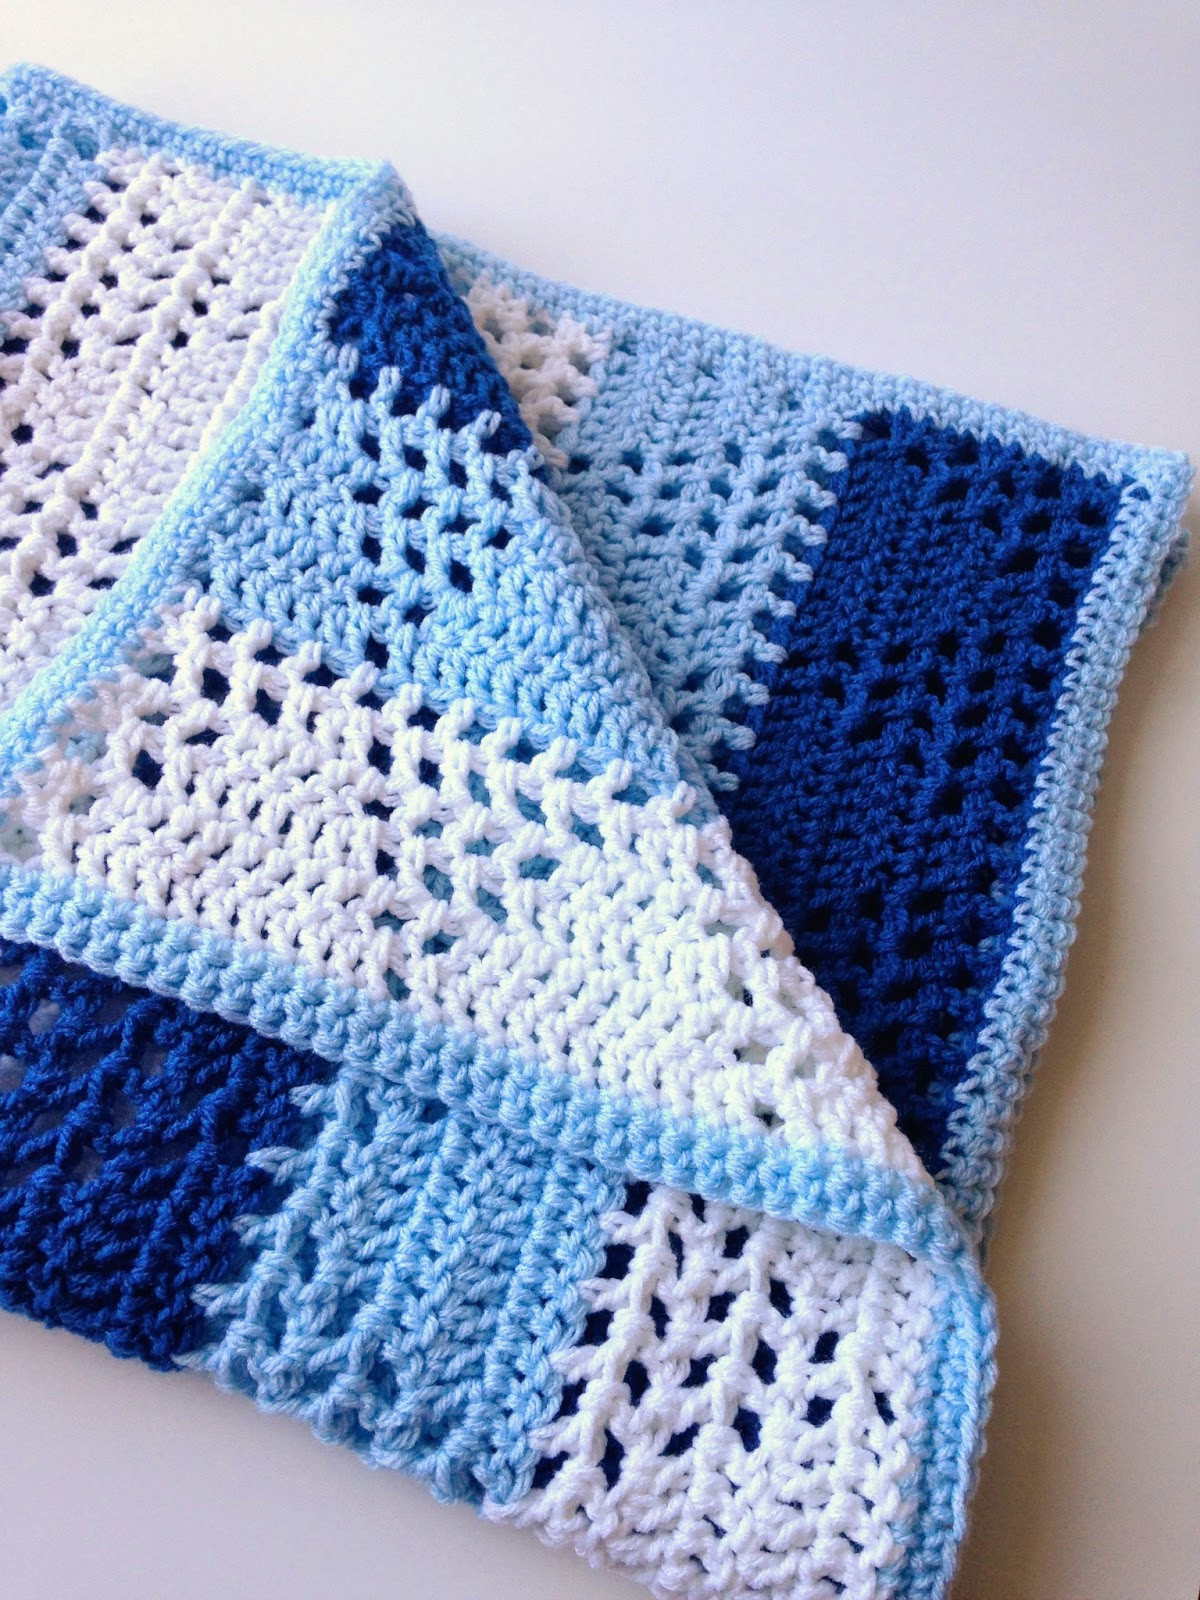 Baby Boy Crochet Blanket Patterns Awesome 5 Little Monsters Triangles & Stripes Baby Blanket Of Amazing 48 Pics Baby Boy Crochet Blanket Patterns